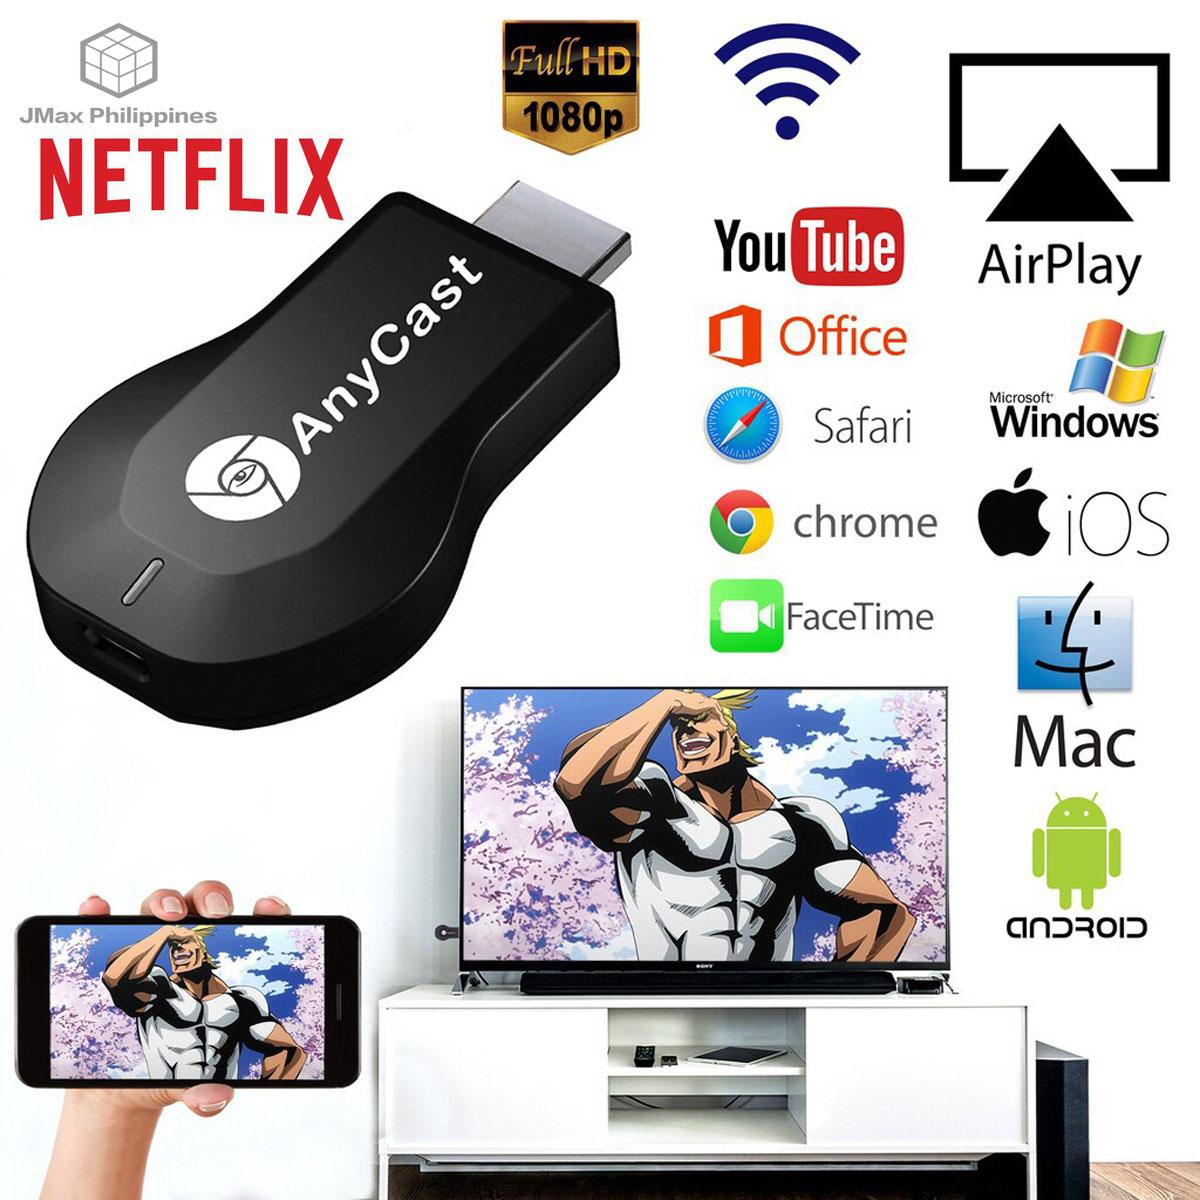 Media Player for sale - Movie Player prices, brands & specs in